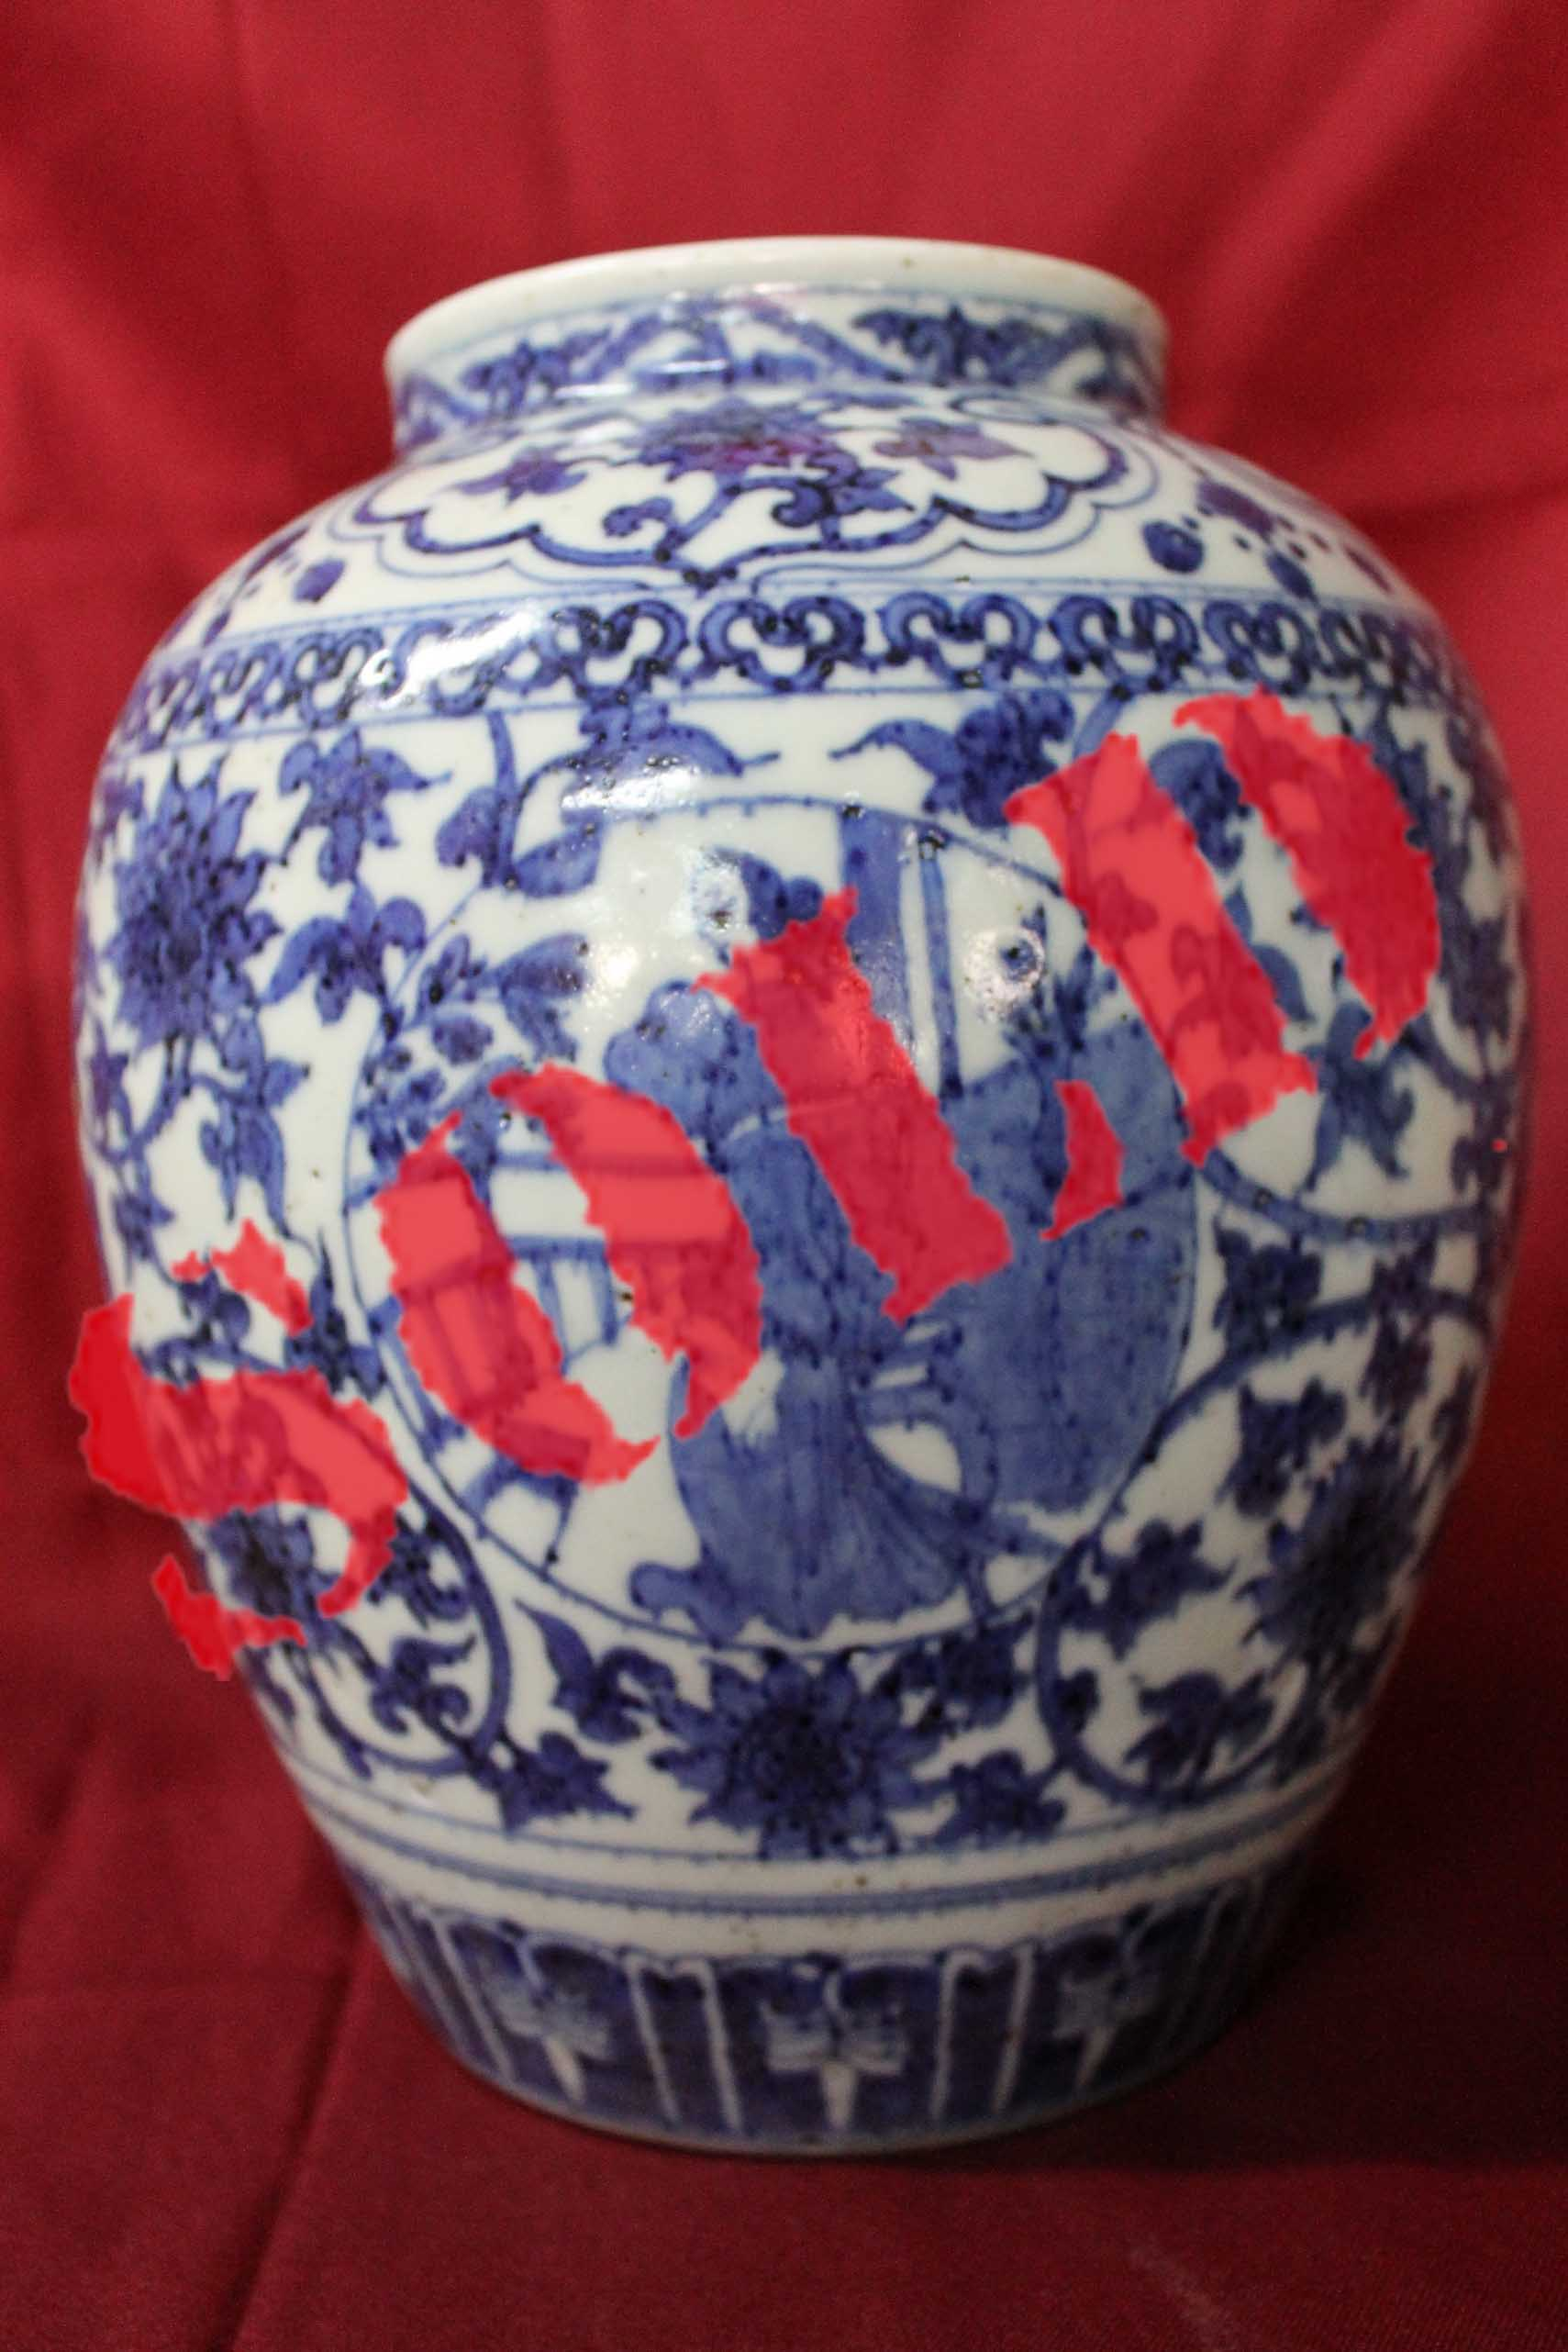 Ming vase markings images ming vase markings jiajing mark ming dynasty jiajing mark ming dynasty source abuse report reviewsmspy